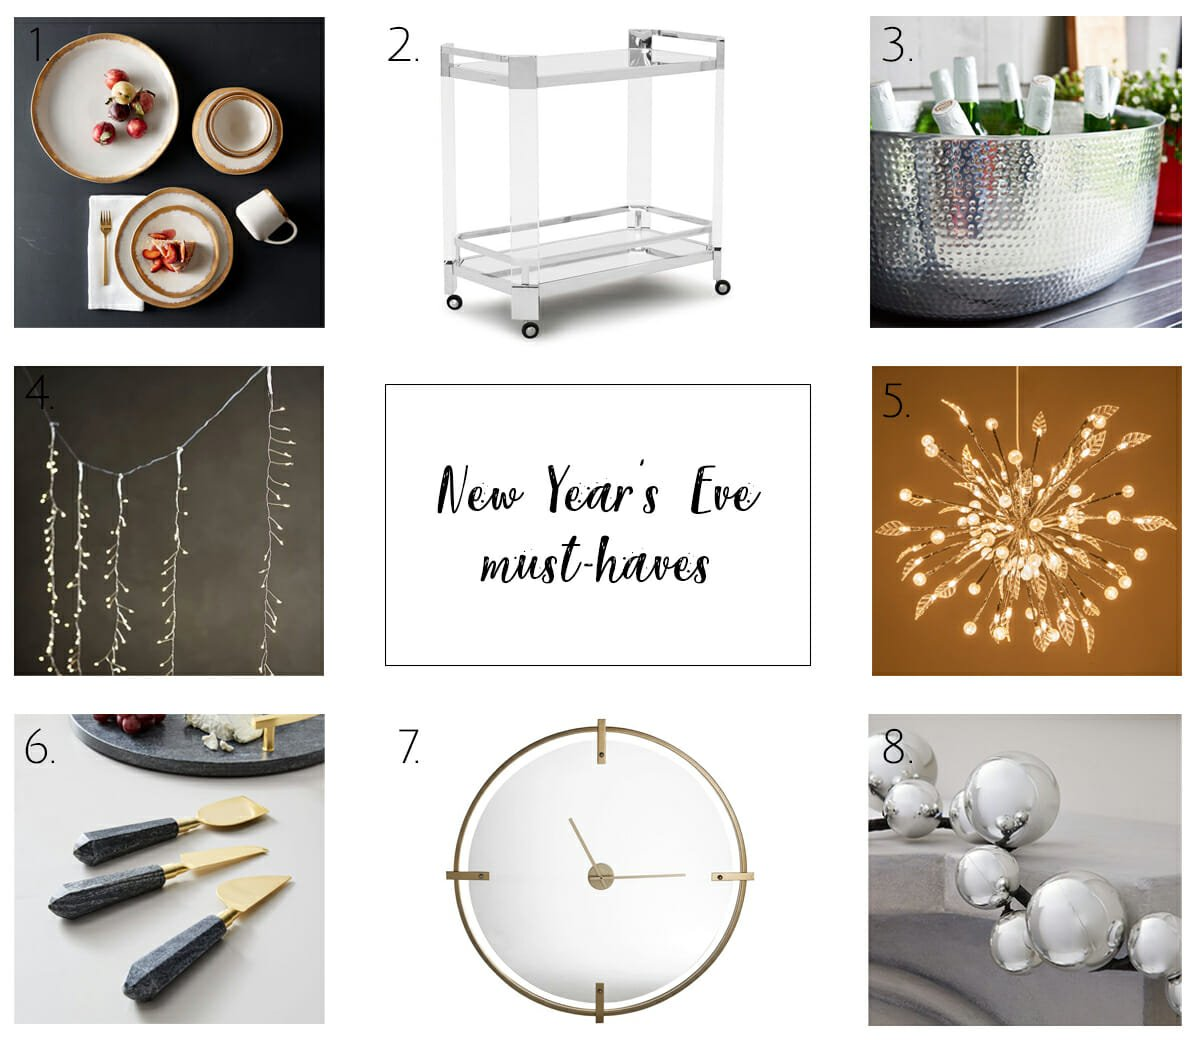 Top picks to decorate for New Year's Eve